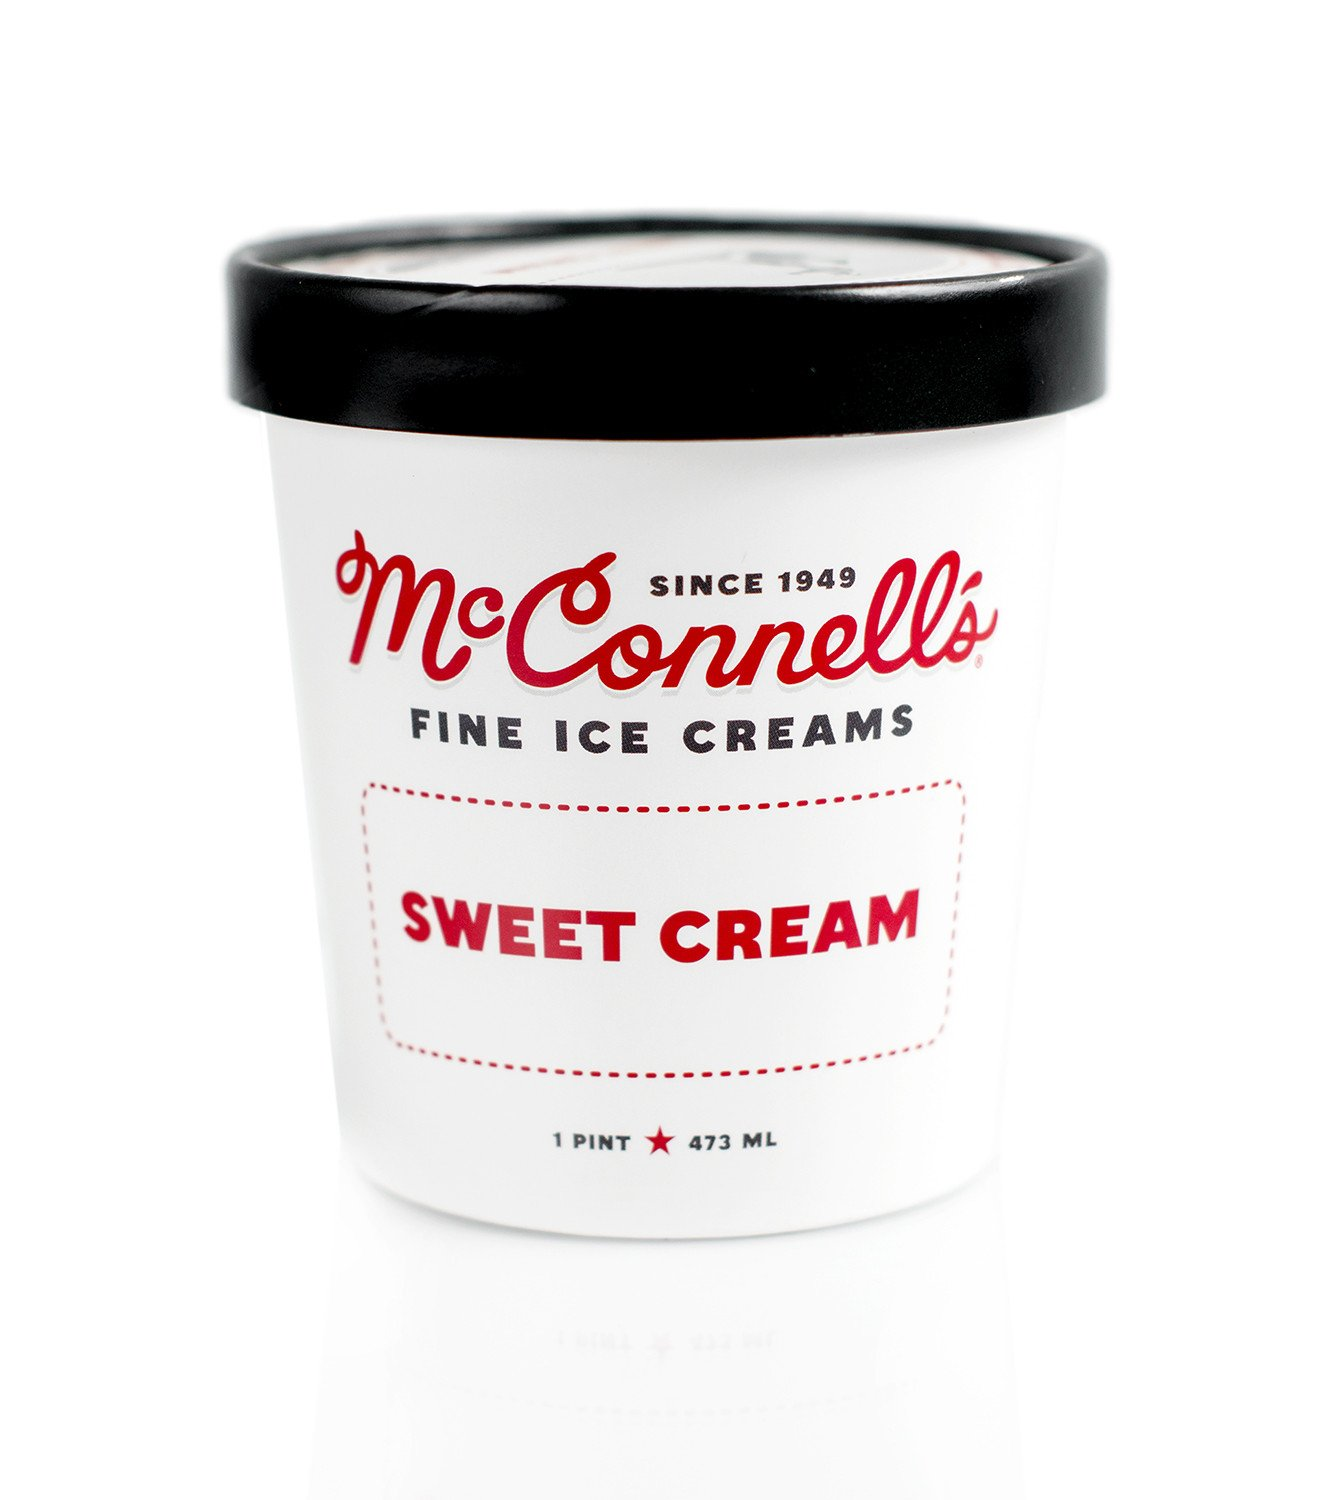 sweetcream-online-pint.jpg